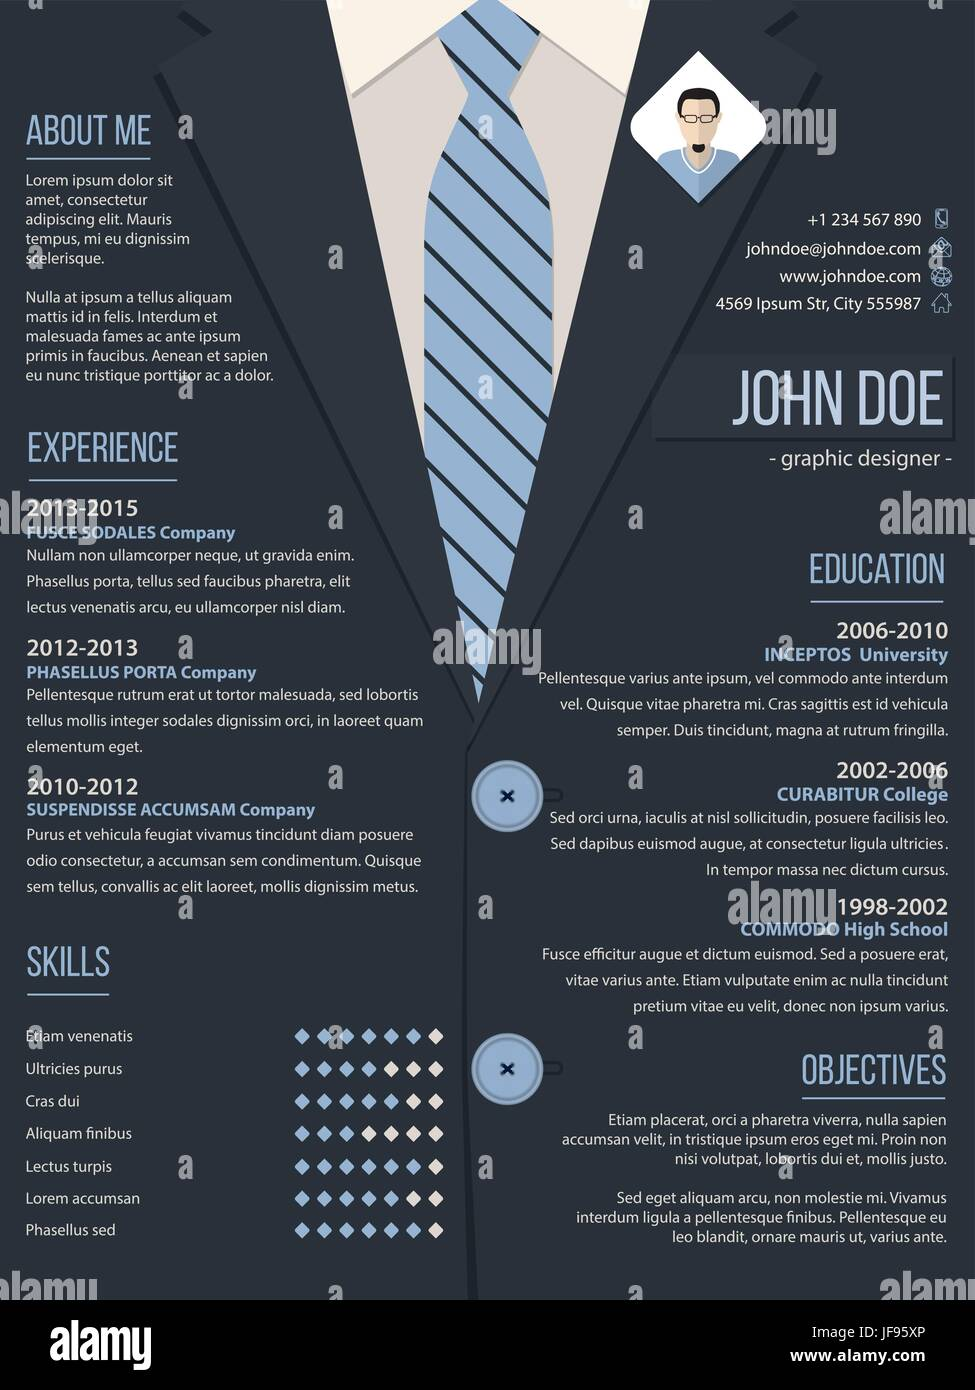 cool resume cv template with business suit background - Cool Resume Template